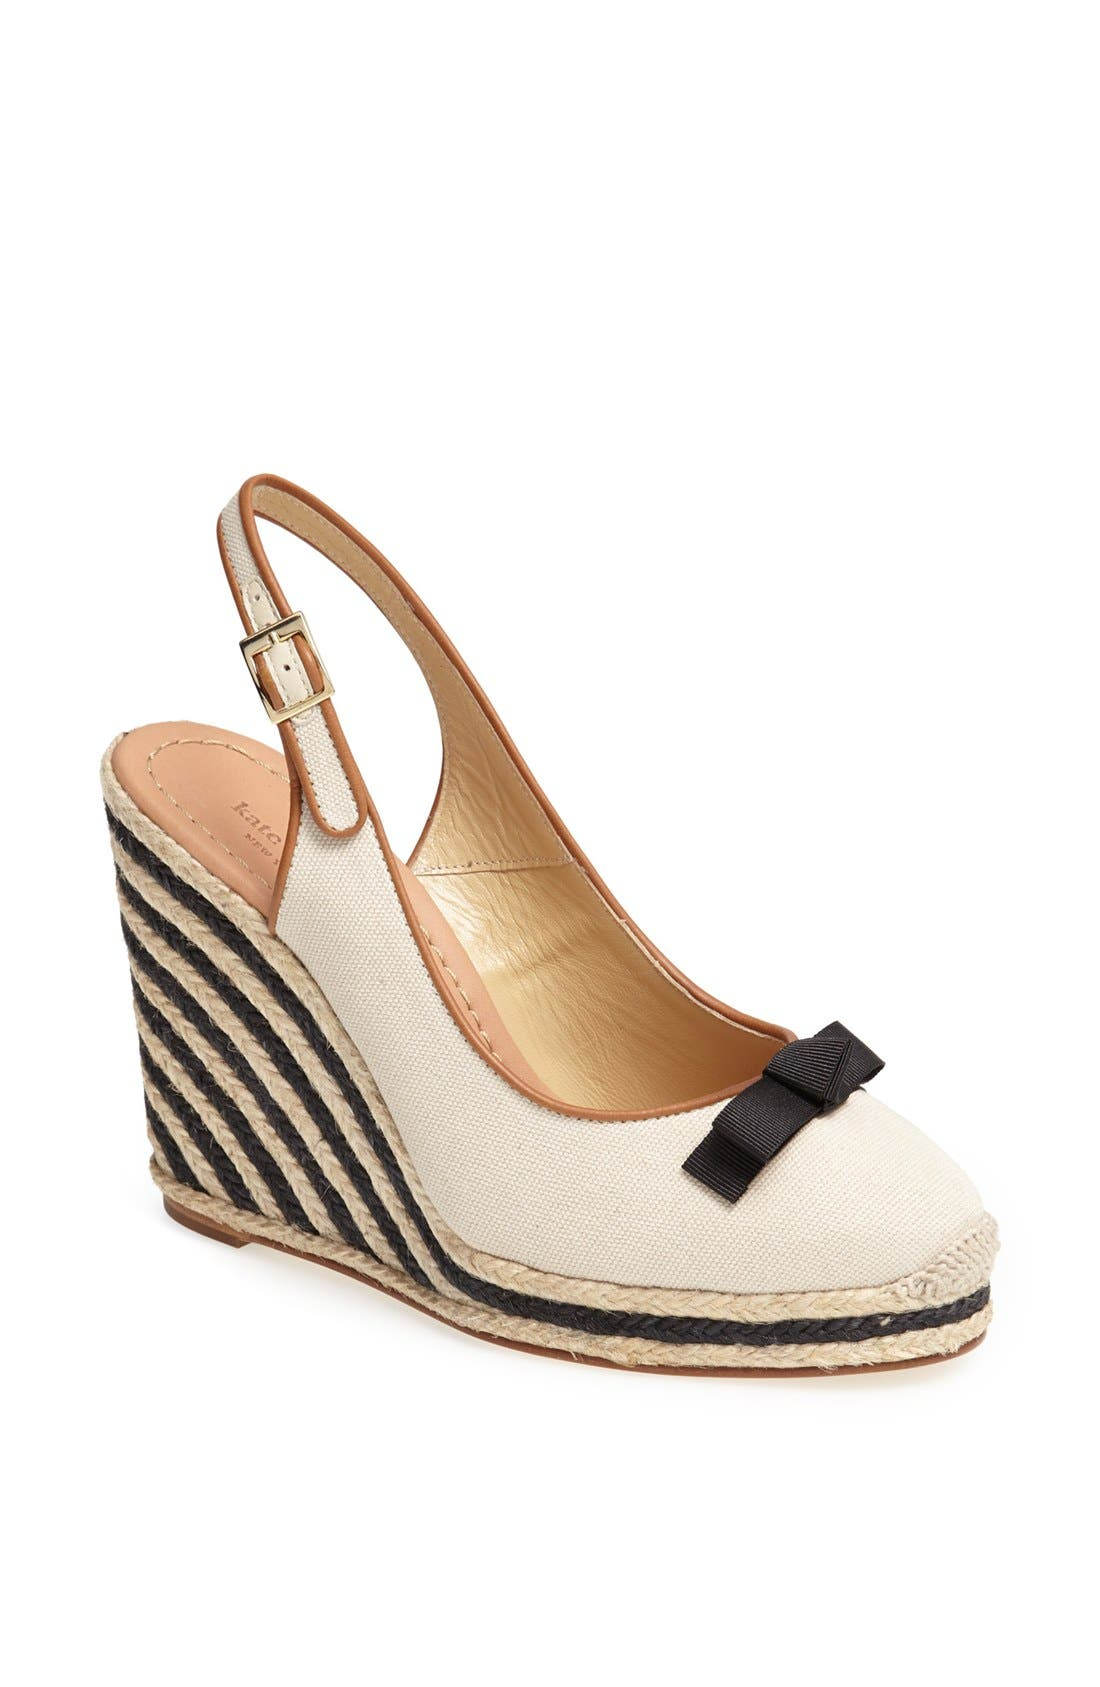 Main Image - kate spade new york 'sweetie' platform wedge espadrille